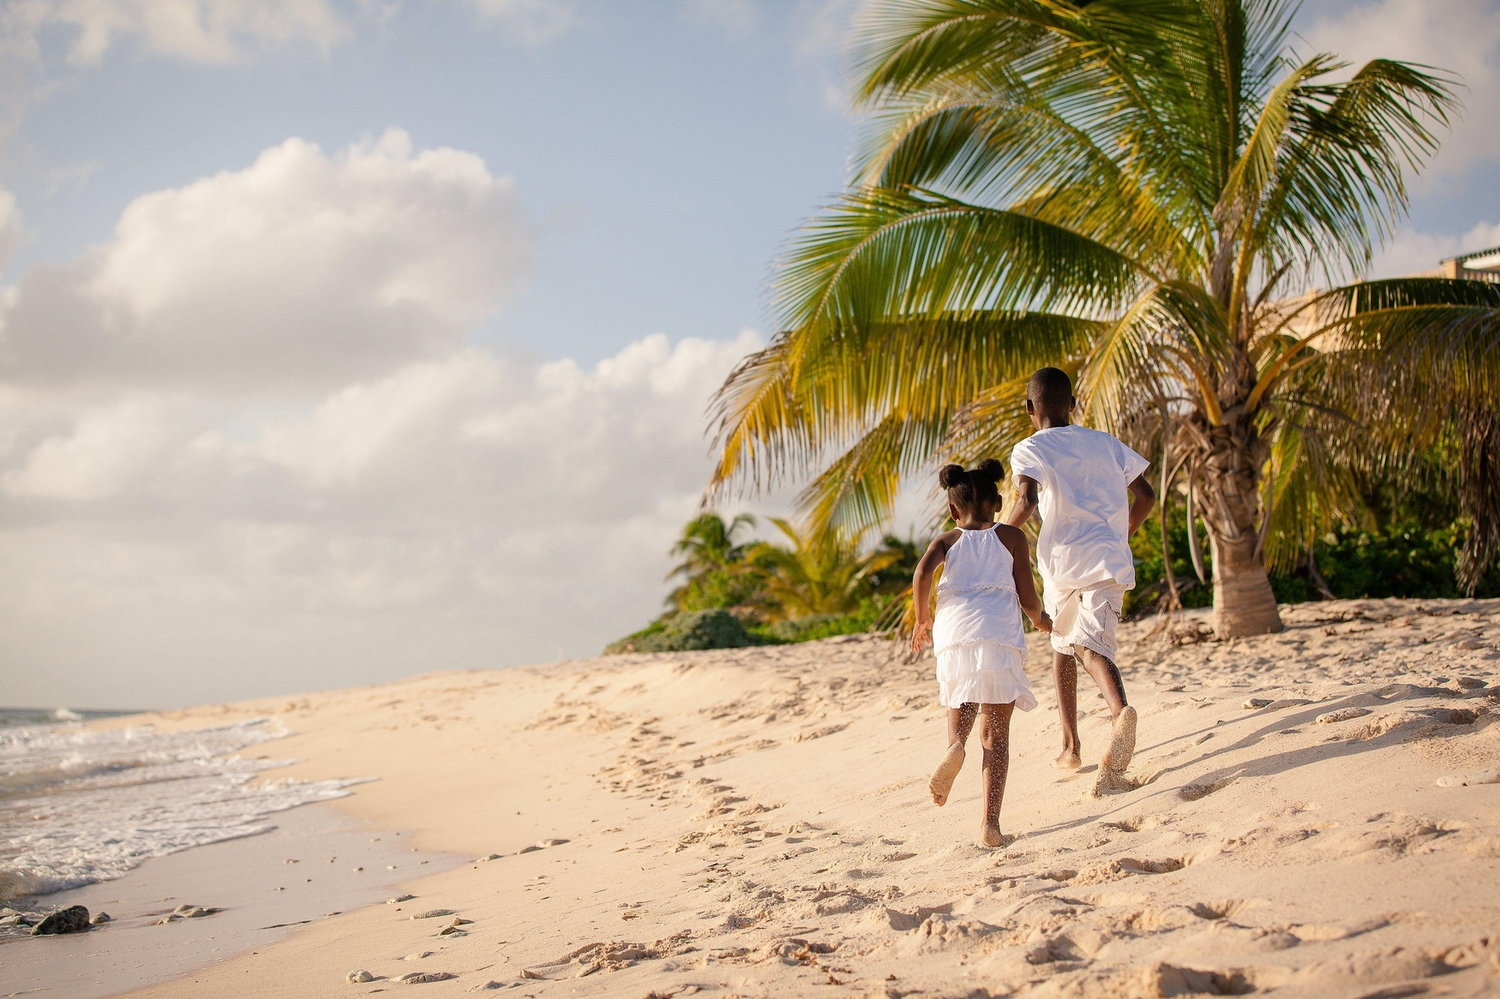 Young girl and boy dressed in white running on the beach